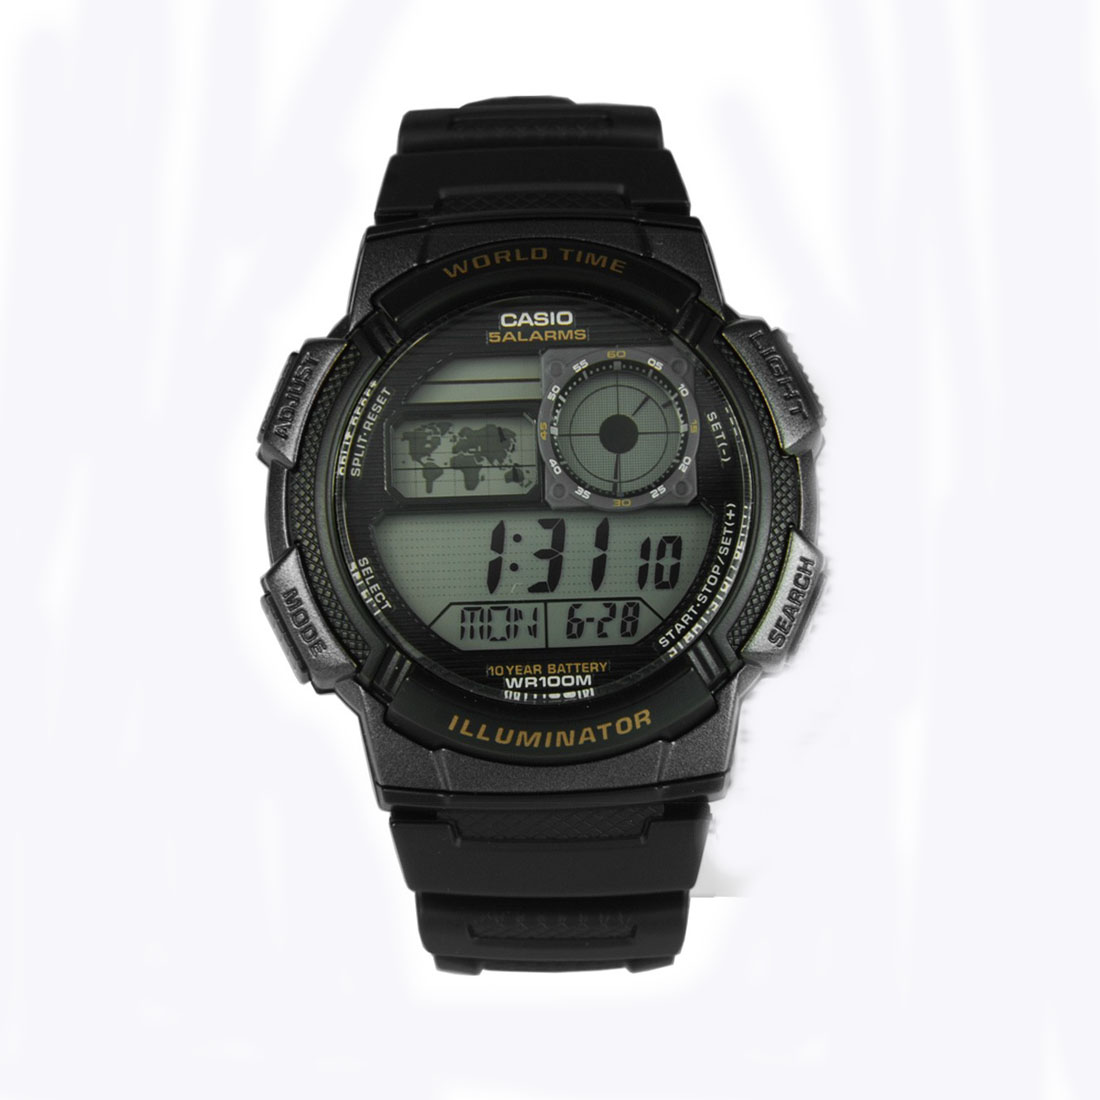 Casio Digital Ae 1000w 1avdf Jam Tangan Pria Hitam Resin6 Daftar Expedition 6339 Mclipbasl Original